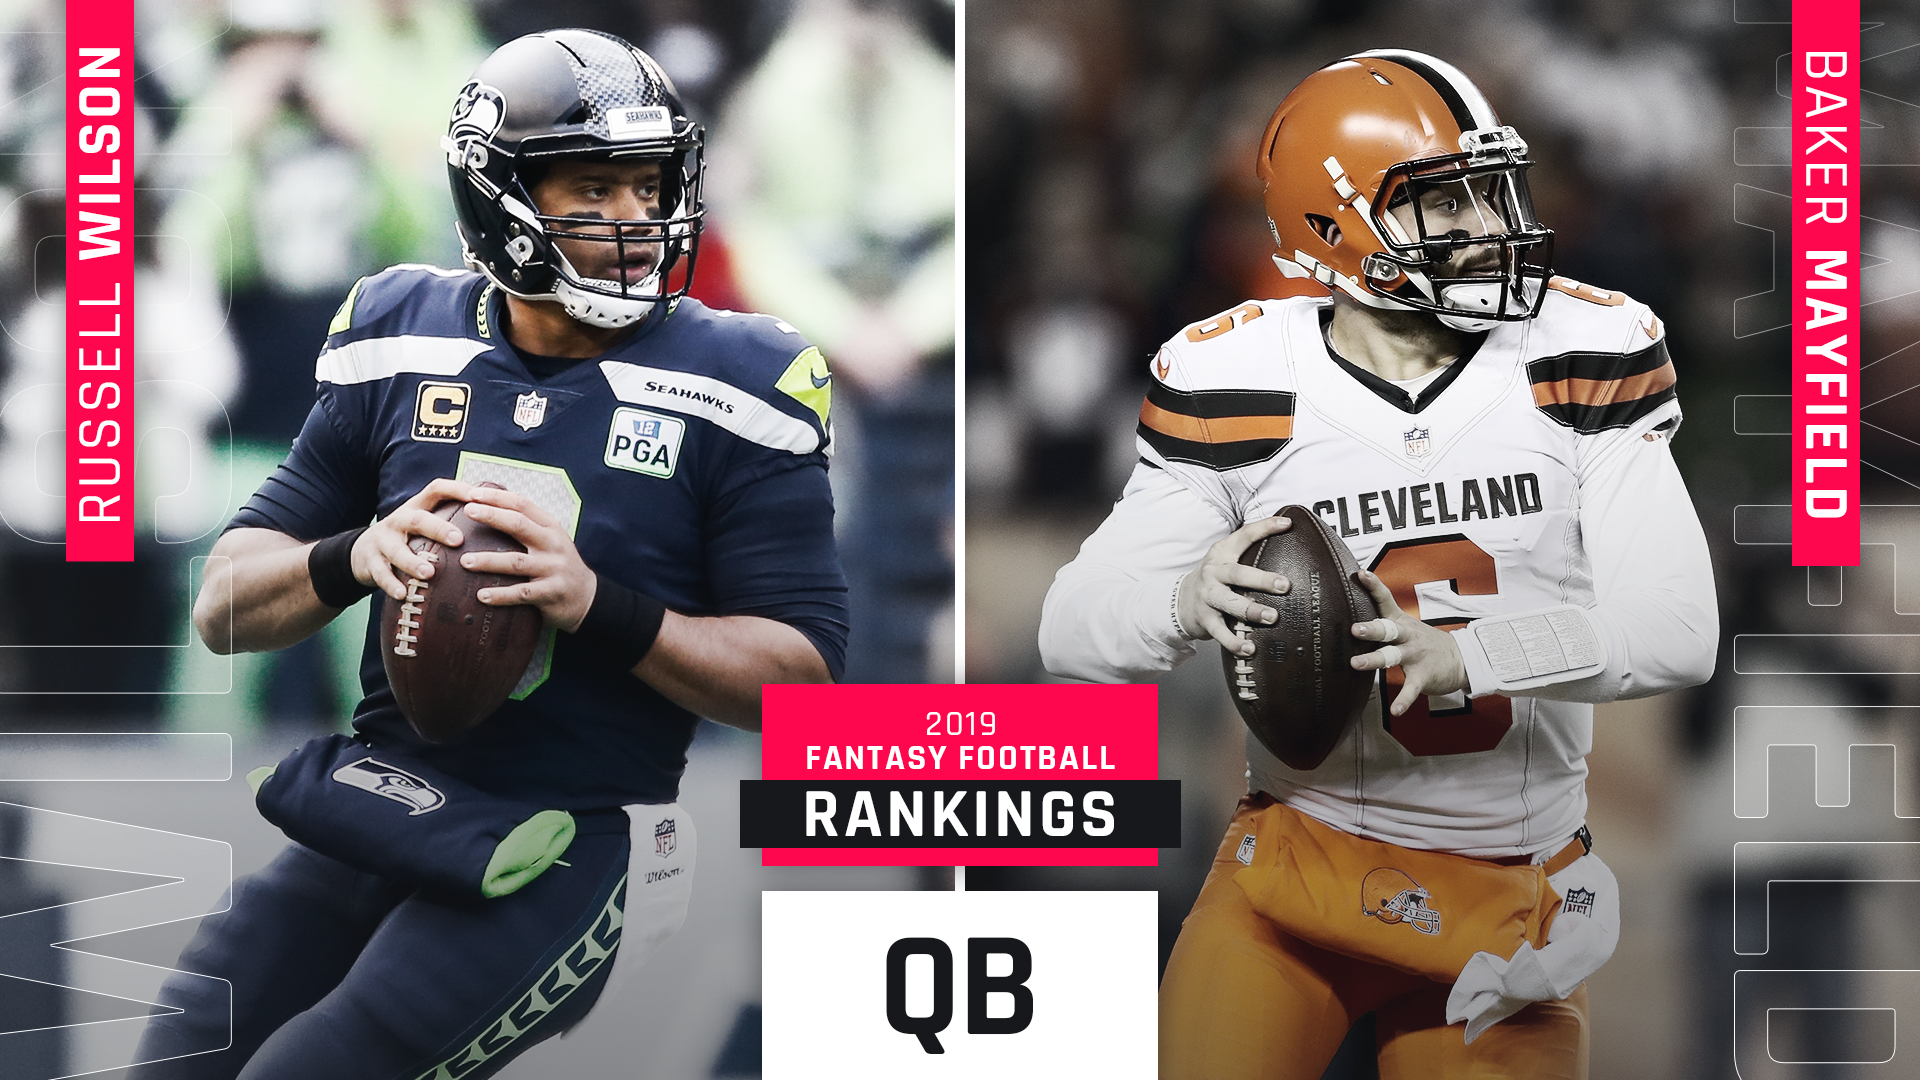 Updated Fantasy QB Rankings: Top quarterback draft picks, sleepers for 2019